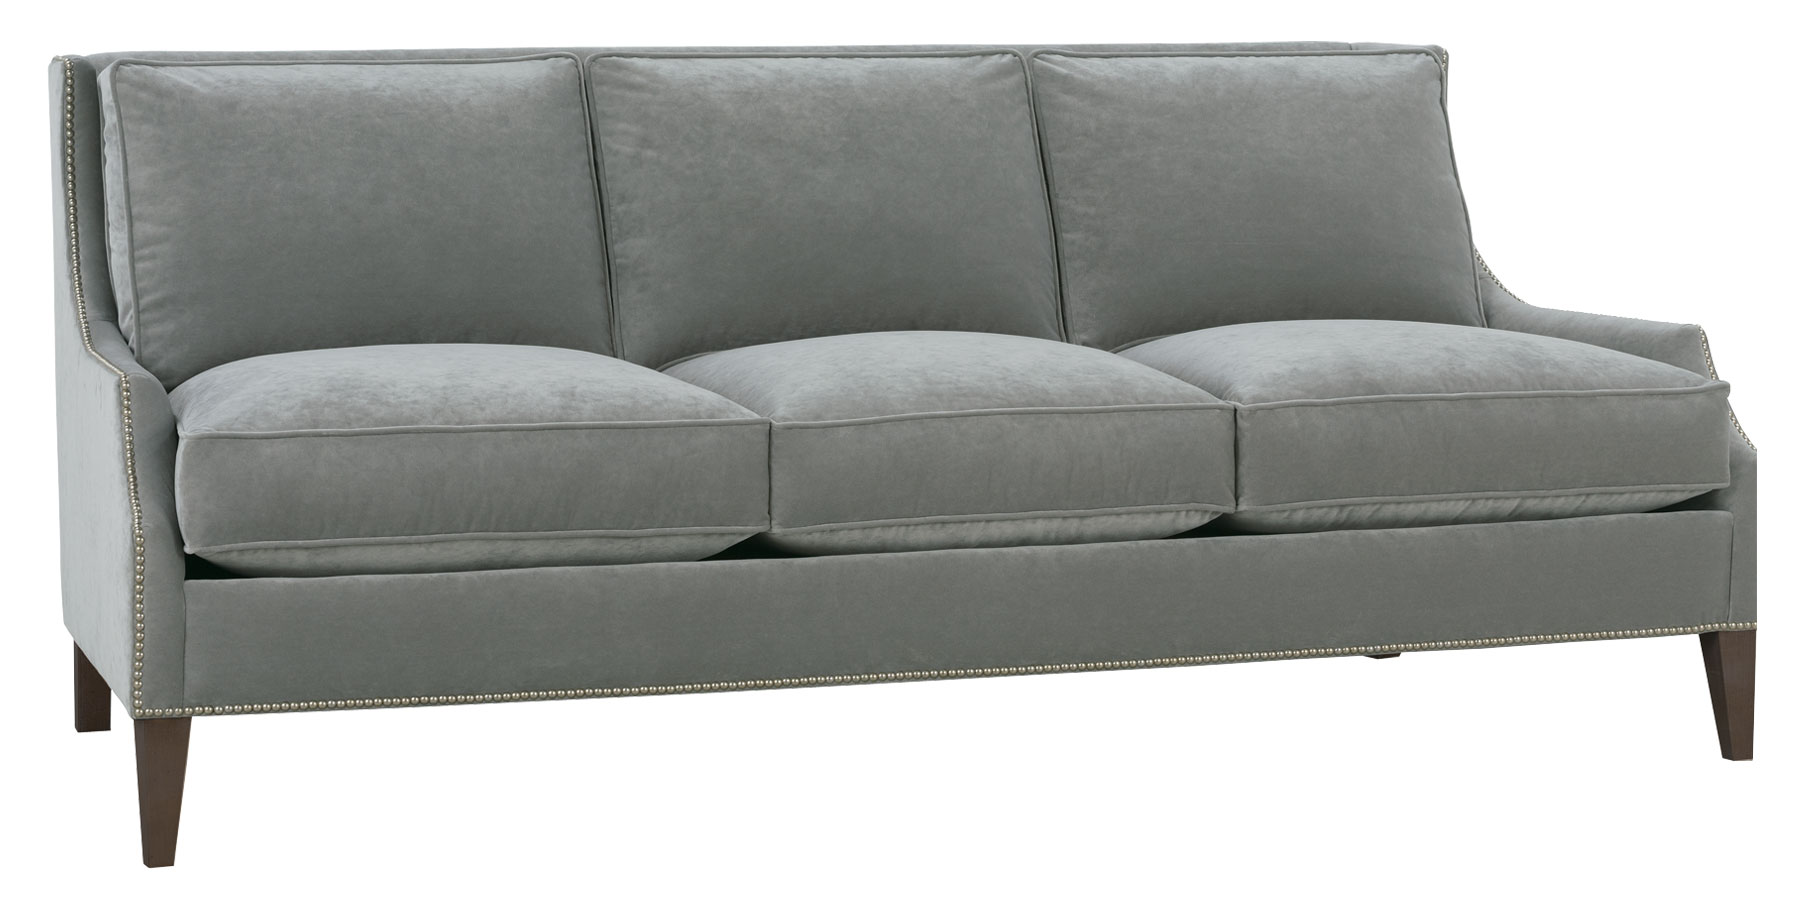 Awesome Hattie Low Arm Sofa